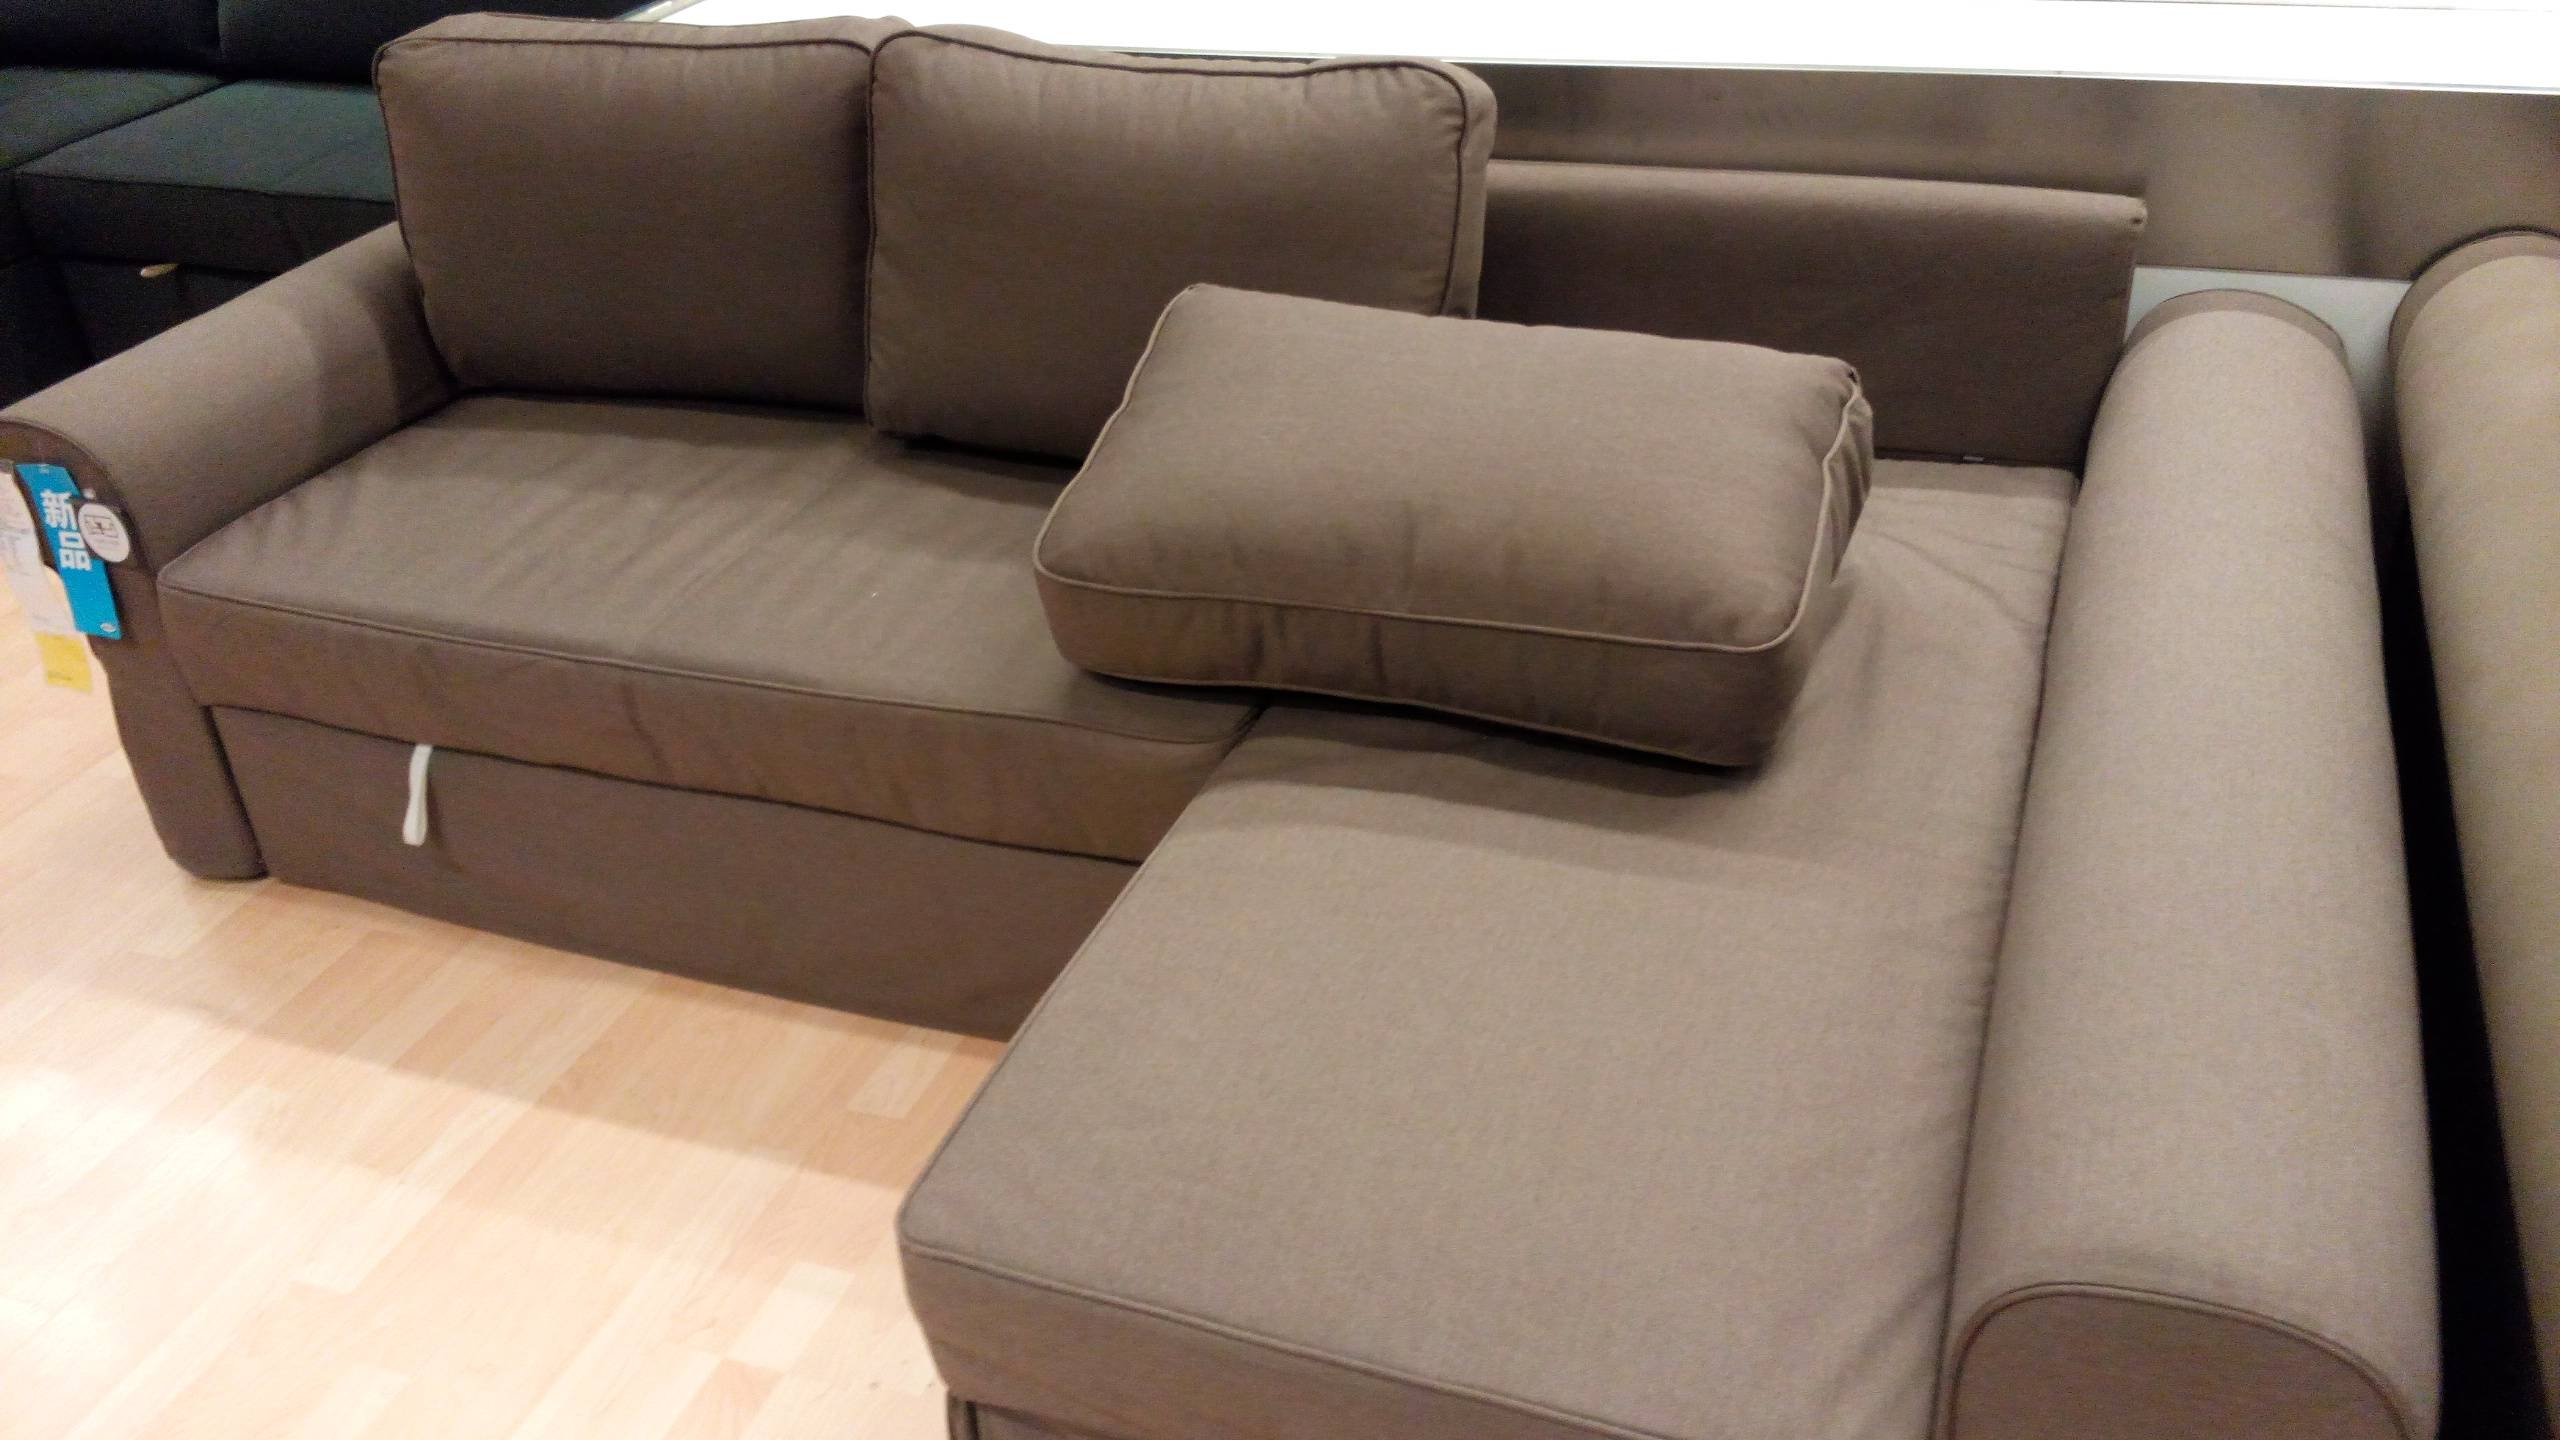 Ikea Vilasund And Backabro Review - Return Of The Sofa Bed Clones! regarding Manstad Sofa Bed Ikea (Image 11 of 25)